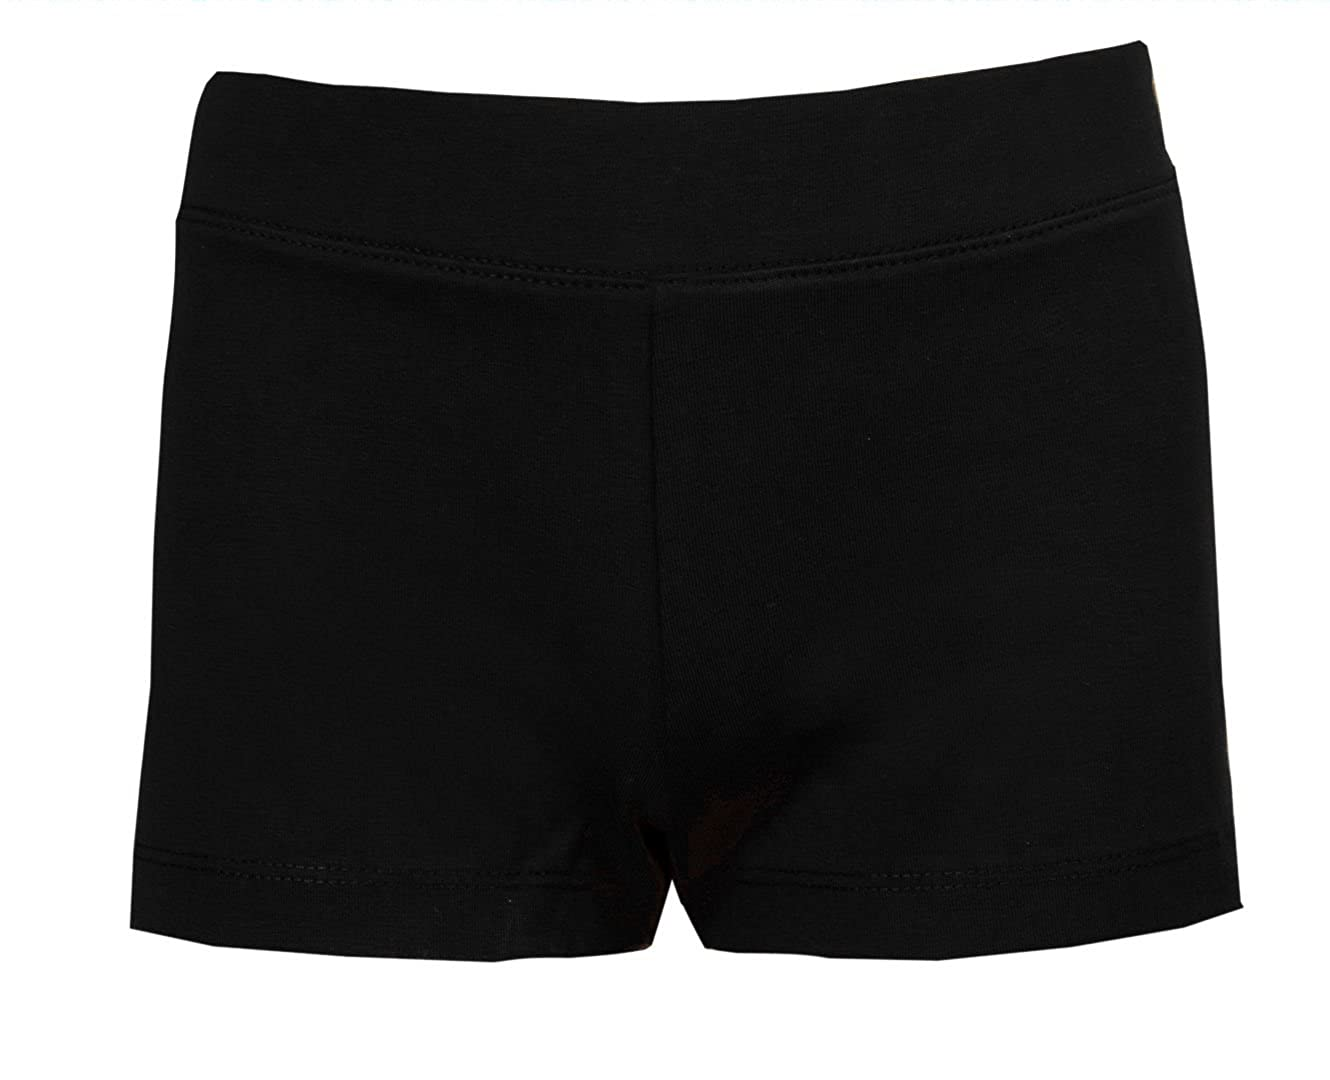 Childrens Cycle Shorts Girls Dance Exercise Cycling Pants Micro Ballet Stretch Running Irish Dancing Shorts Hot Pants Black